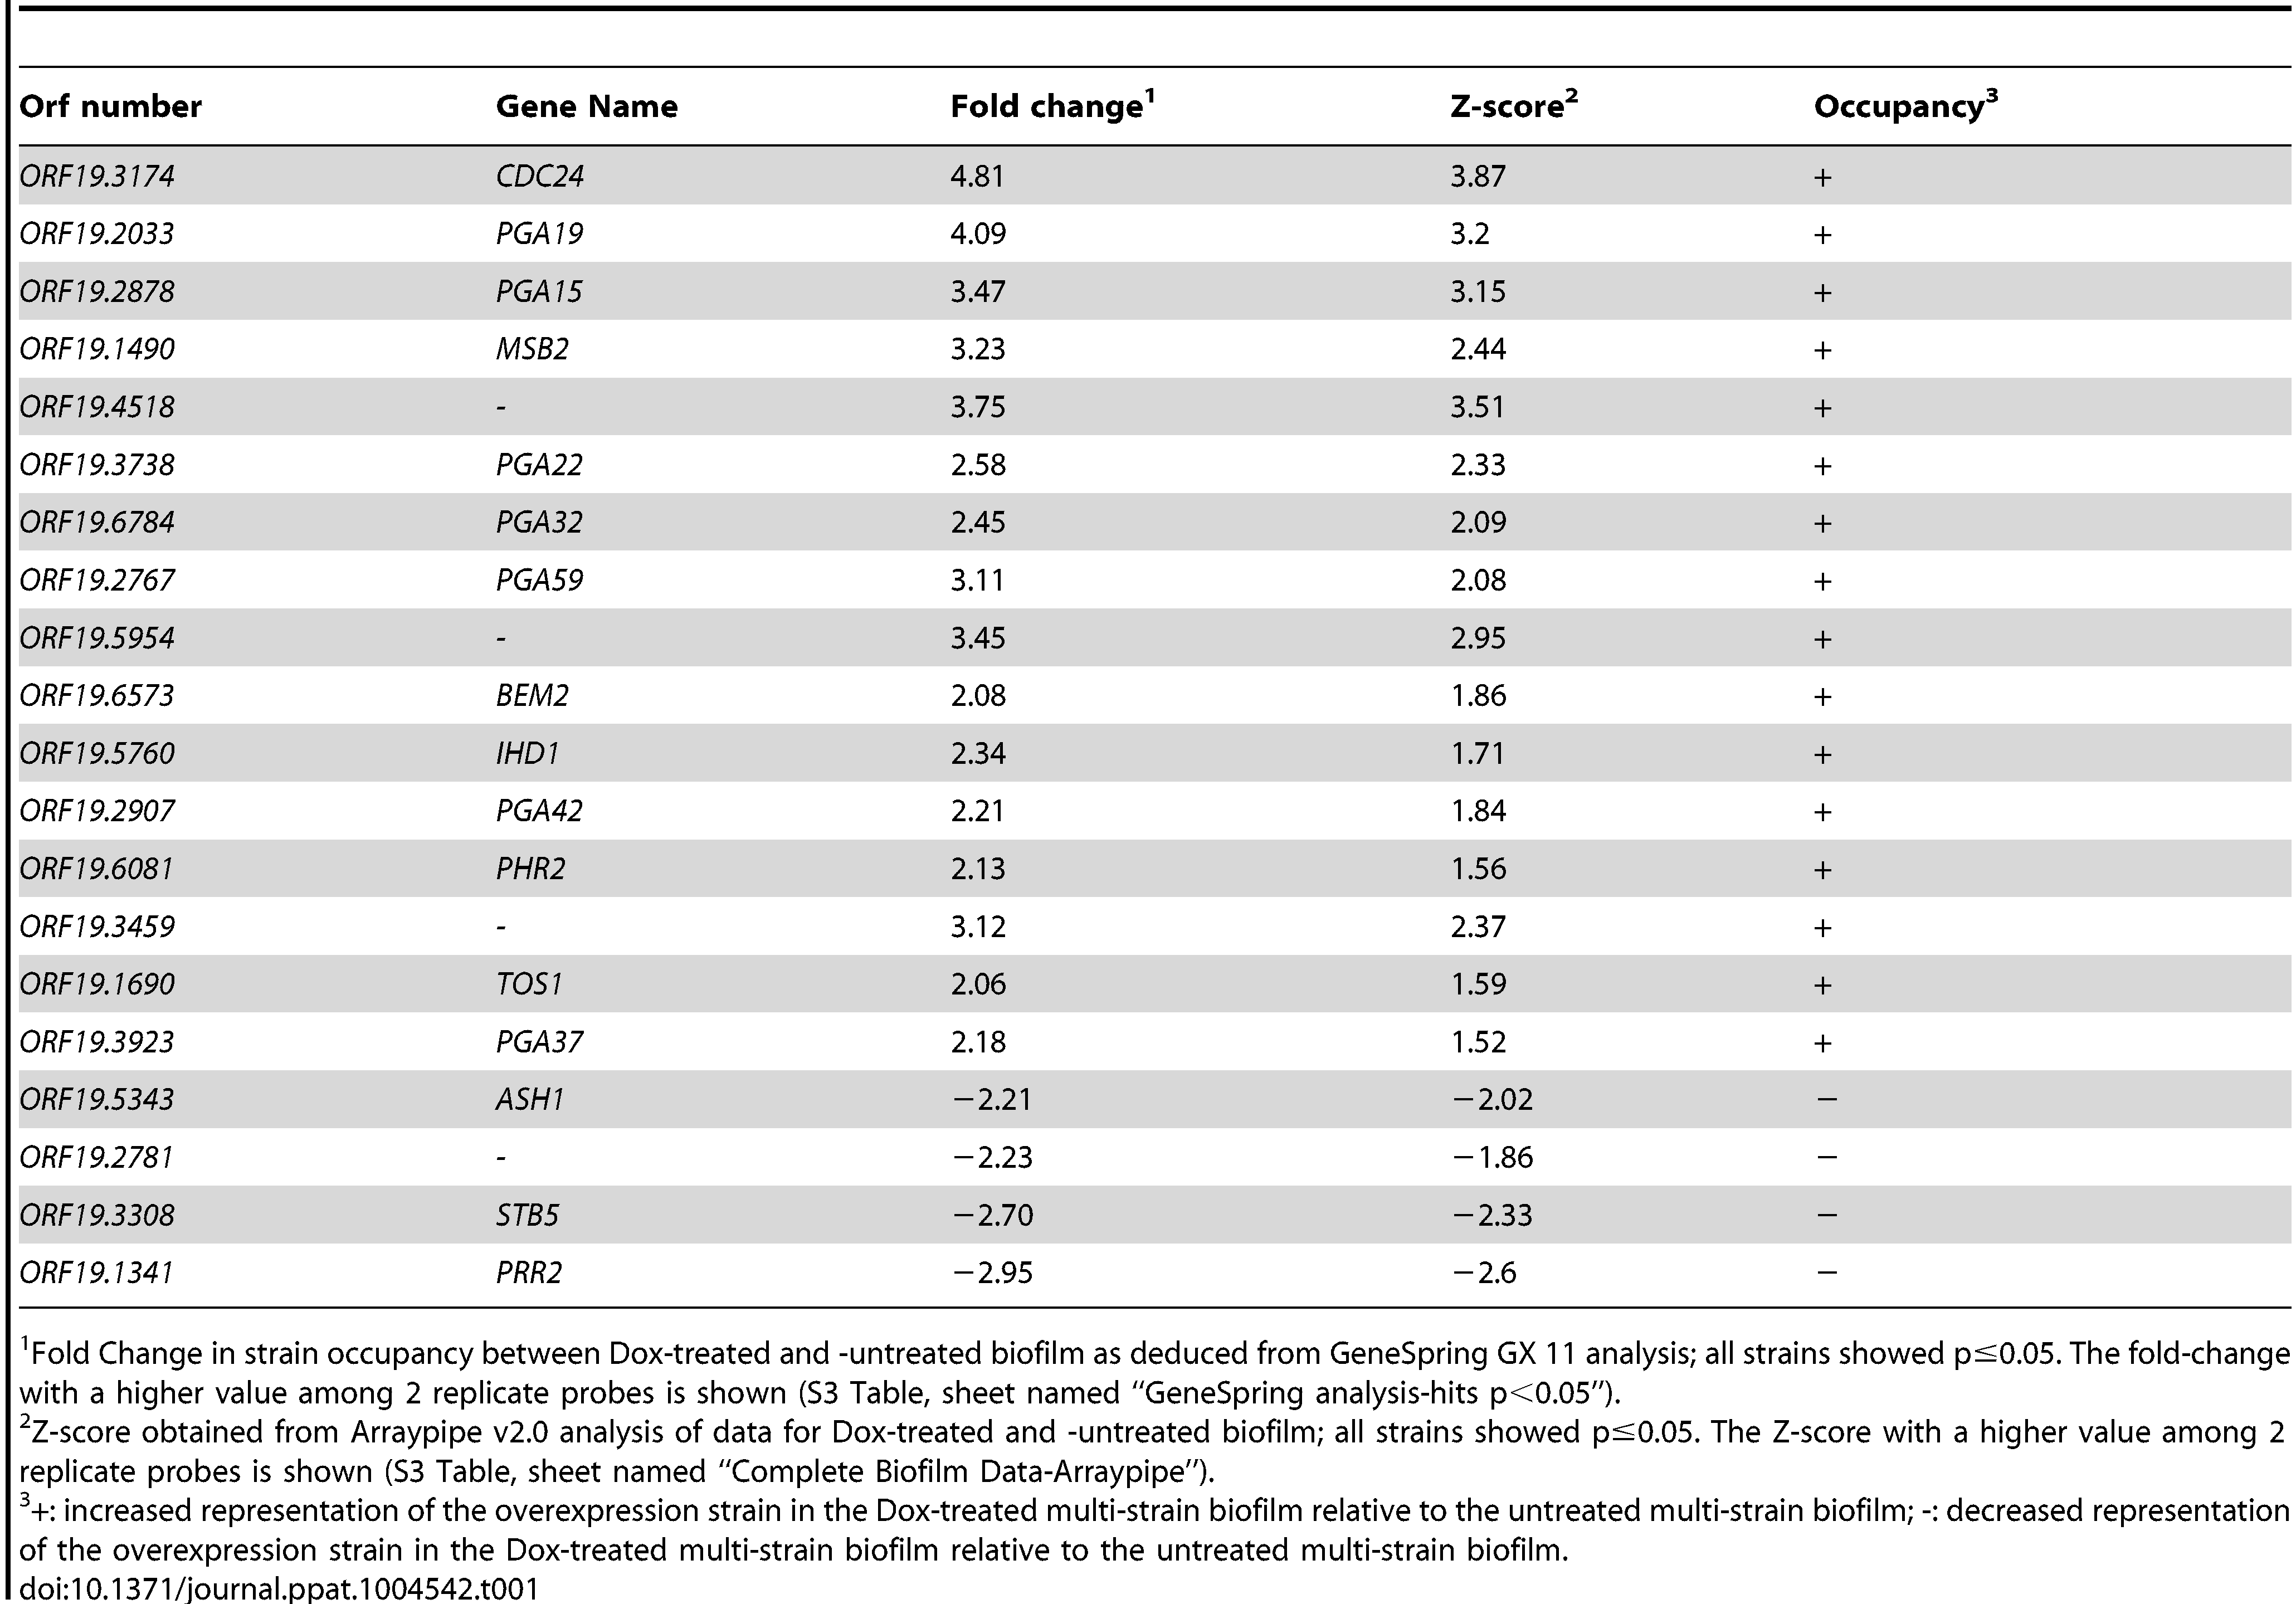 List of genes whose overexpression affects strain occupancy in a multi-strain biofilm.